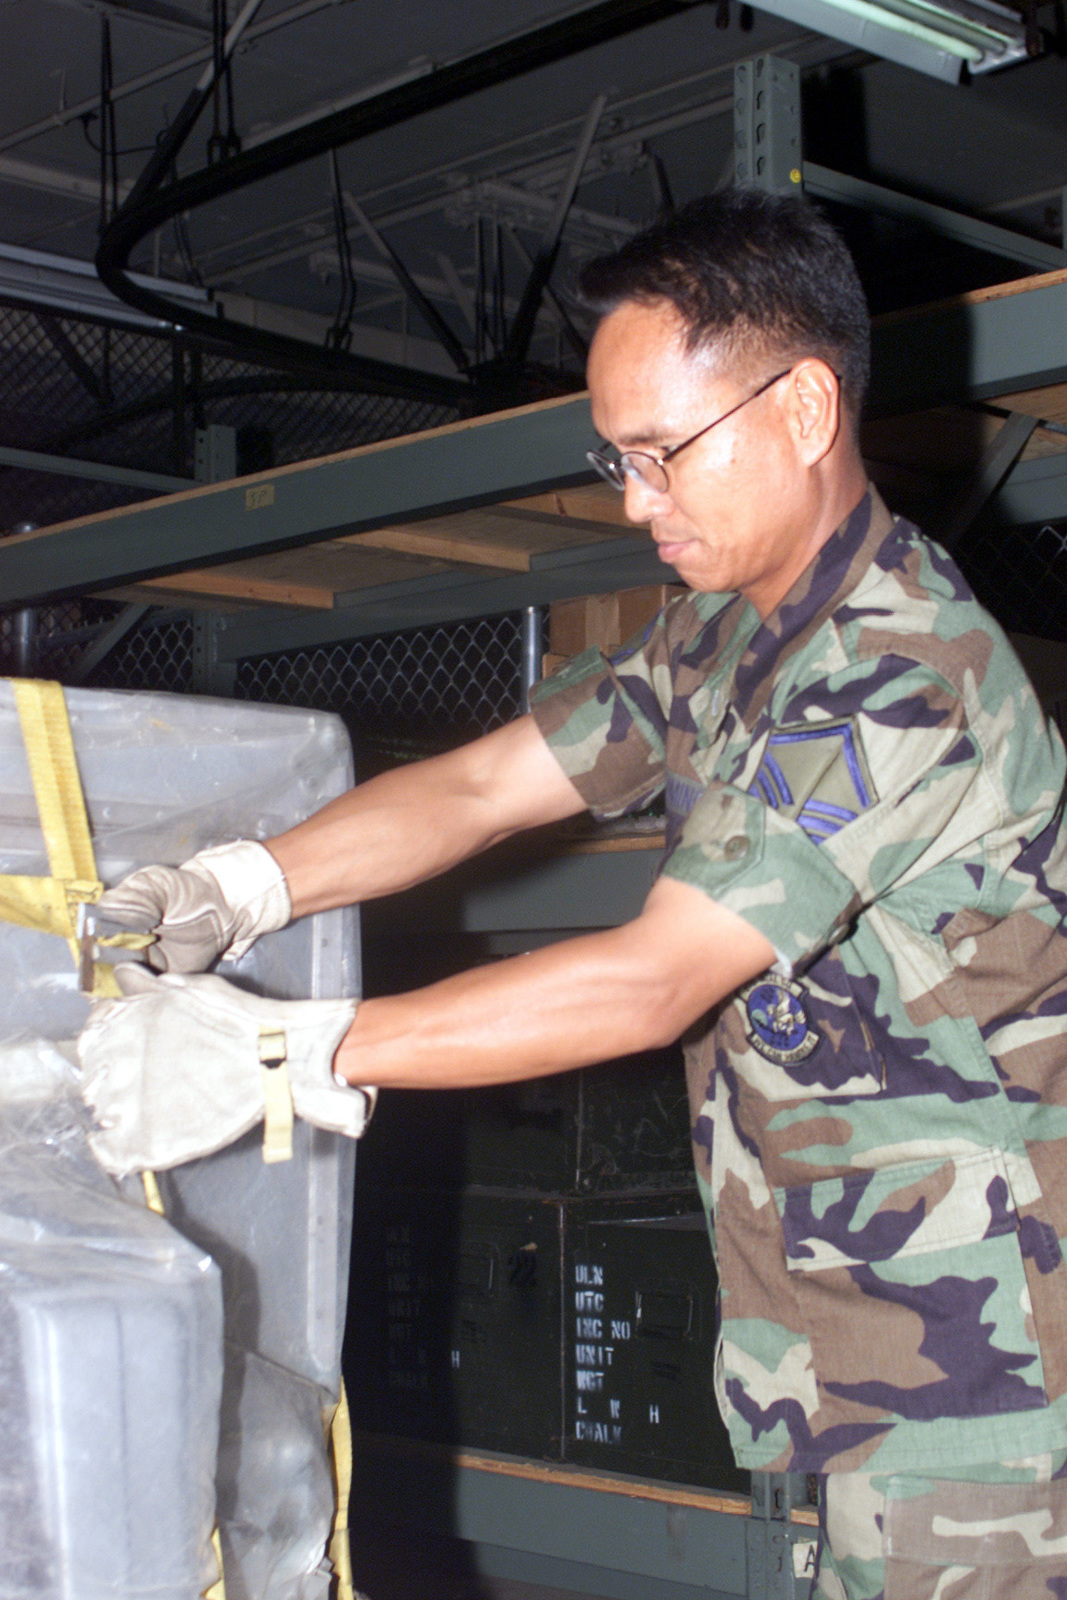 MASTER Sergeant Jesse Domingo, USAF, Assistant Corporate Information Manager from the 55th Communications Squadron, releases the top netting from the flight pallet during training for an upcoming ORE (Operational Readiness Exercise) exercise held at Offutt AFB